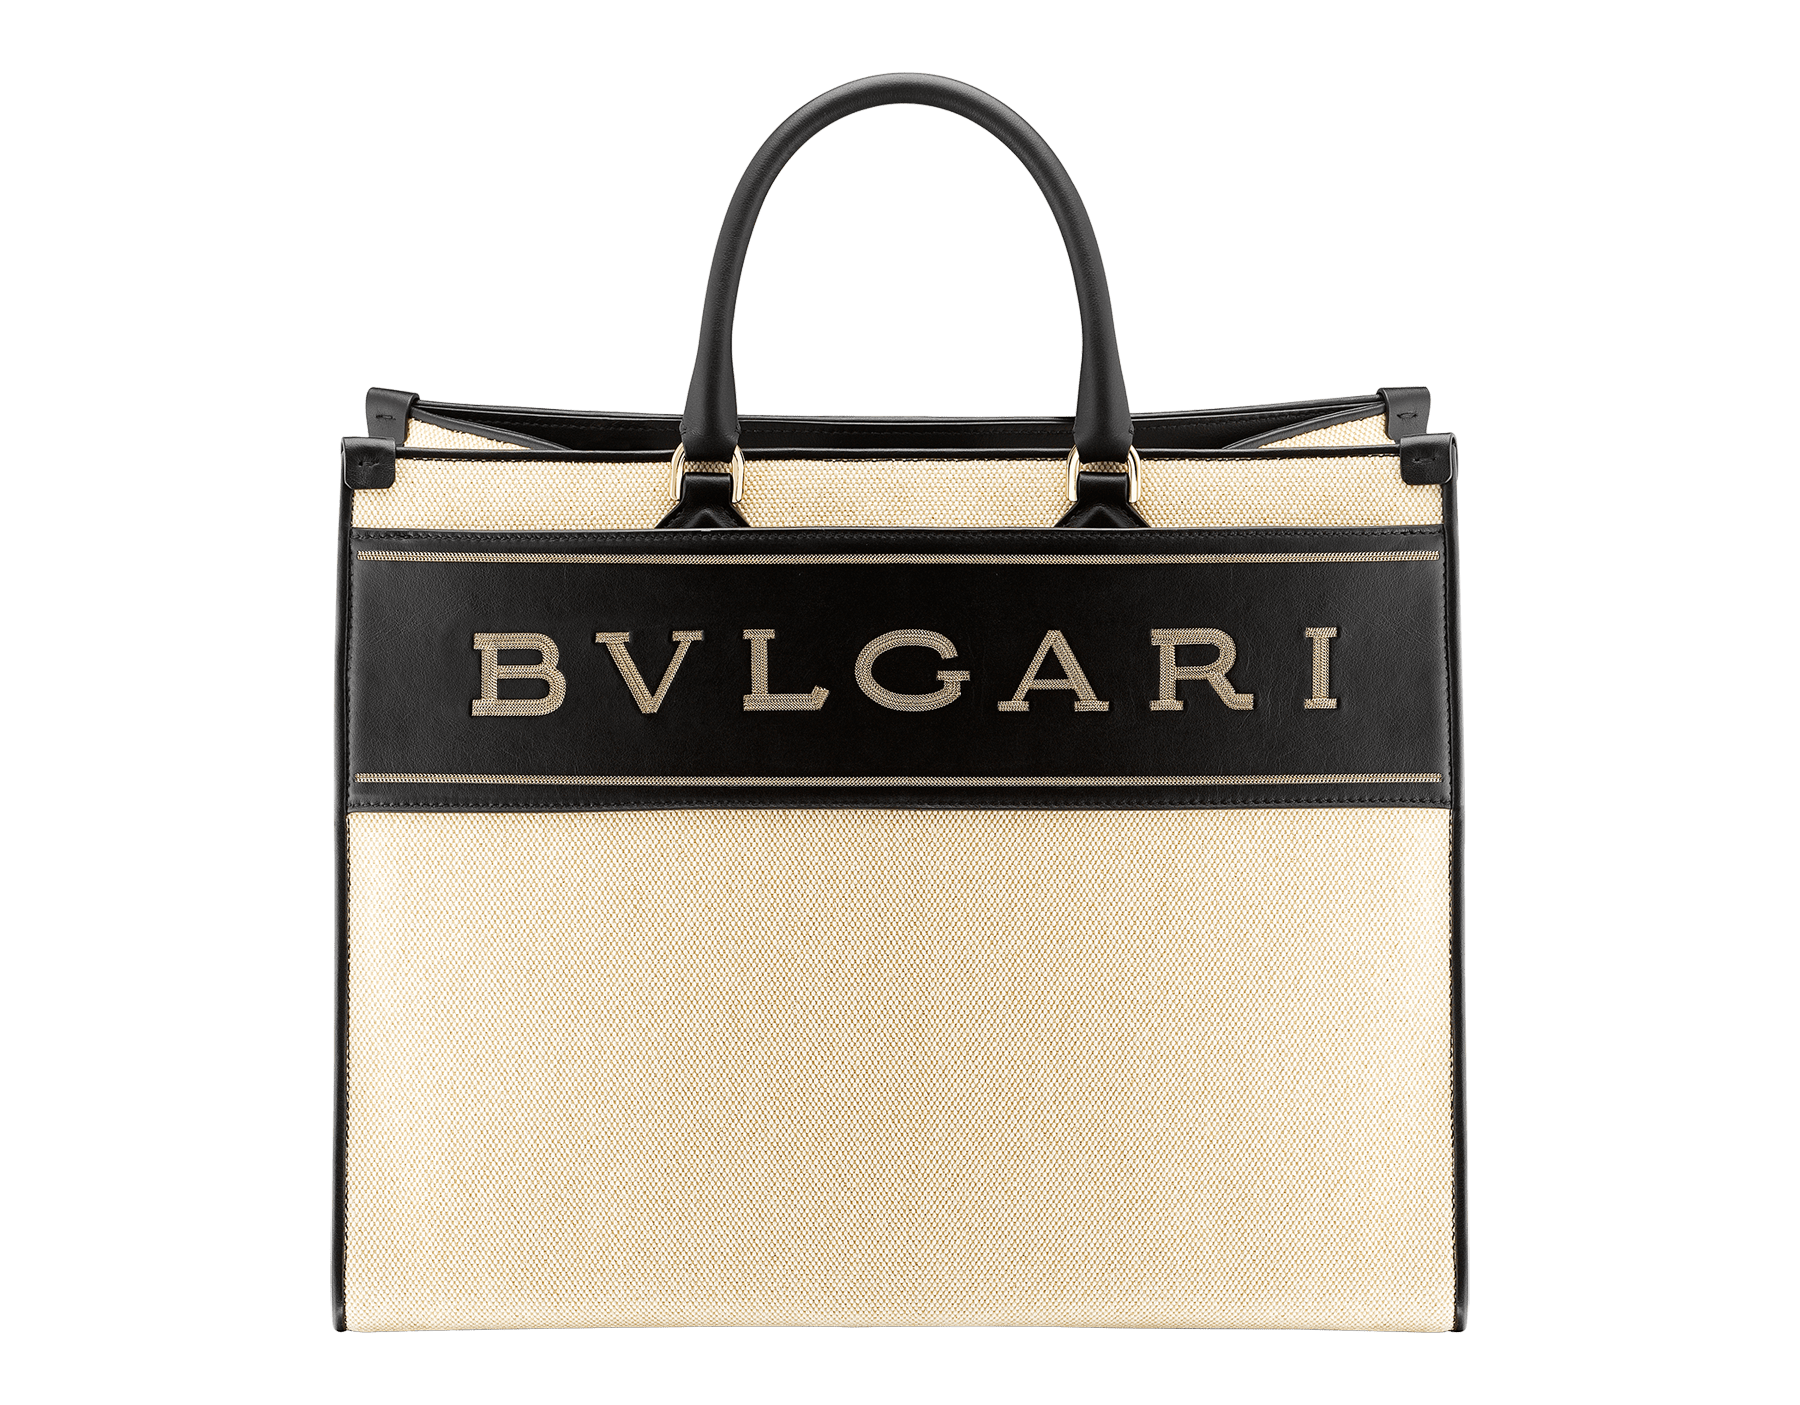 """""""Bvlgari Logo"""" large tote bag in black calf leather, with black grosgrain inner lining. Bvlgari logo featured with dark ruthenium-plated brass chain inserts on the black calf leather. BVL-1160 image 1"""